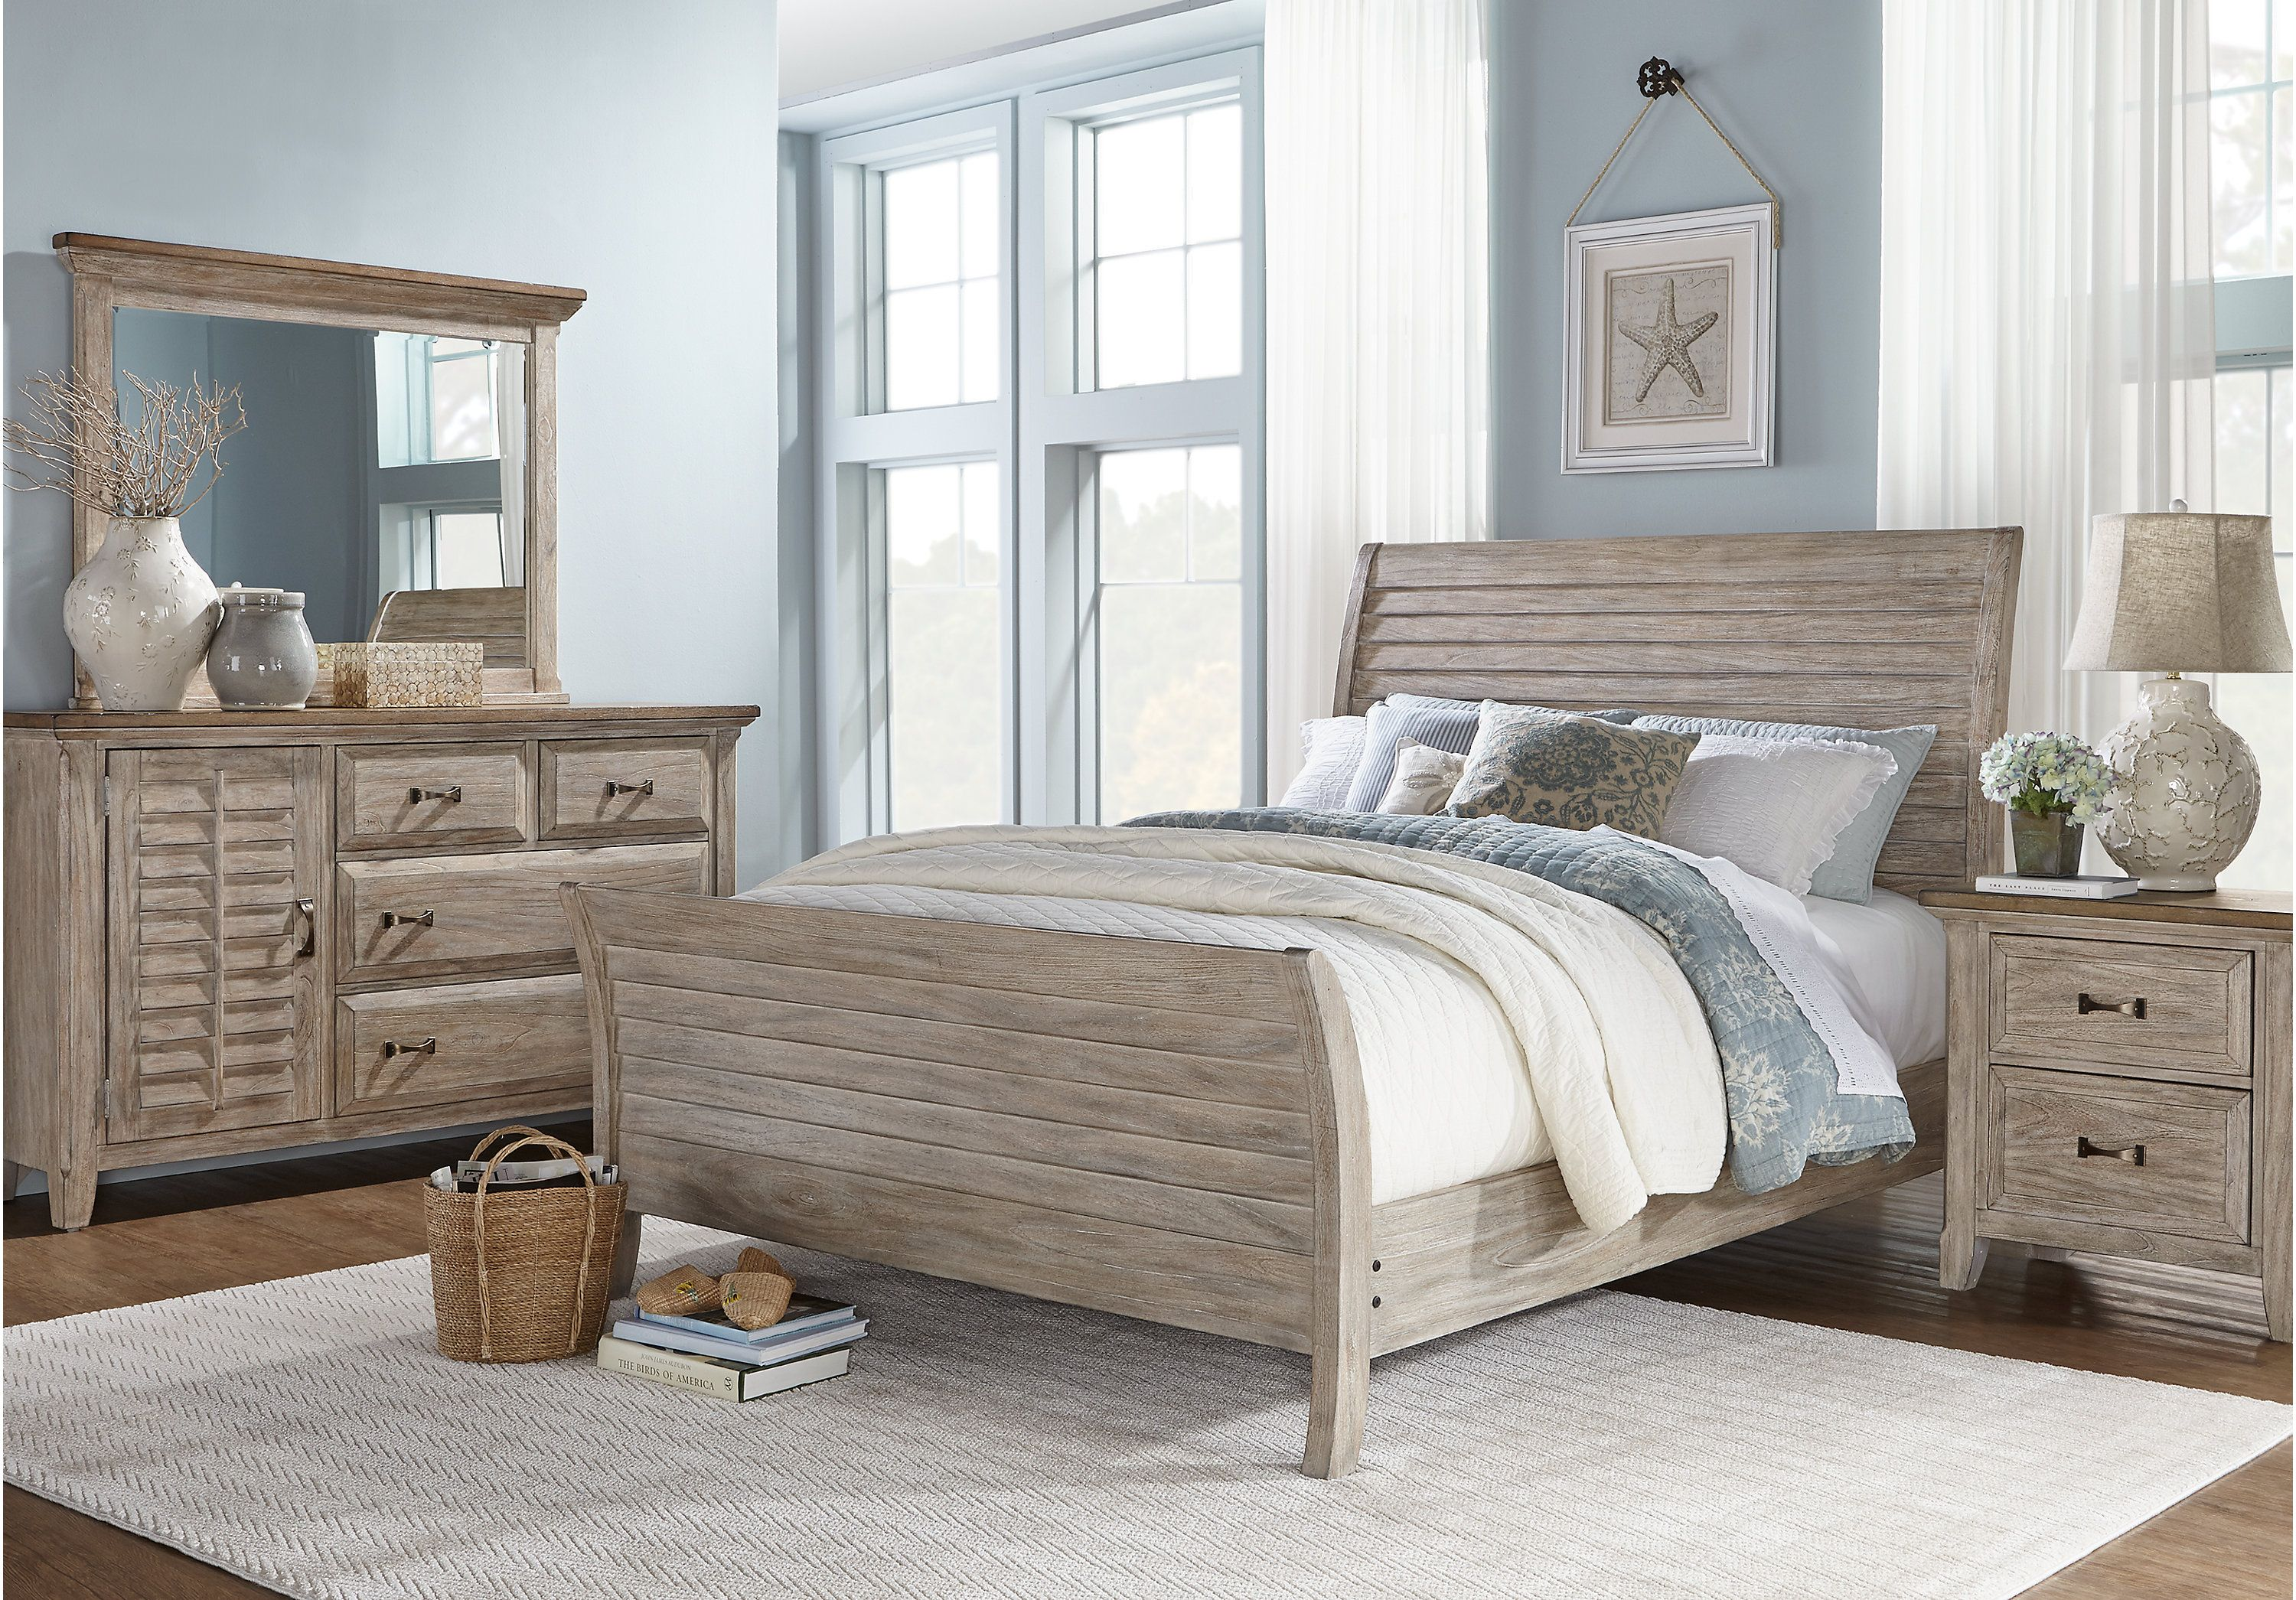 Master bedroom furniture sets  picture of Nantucket Breeze White  Pc King Sleigh Bedroom from King